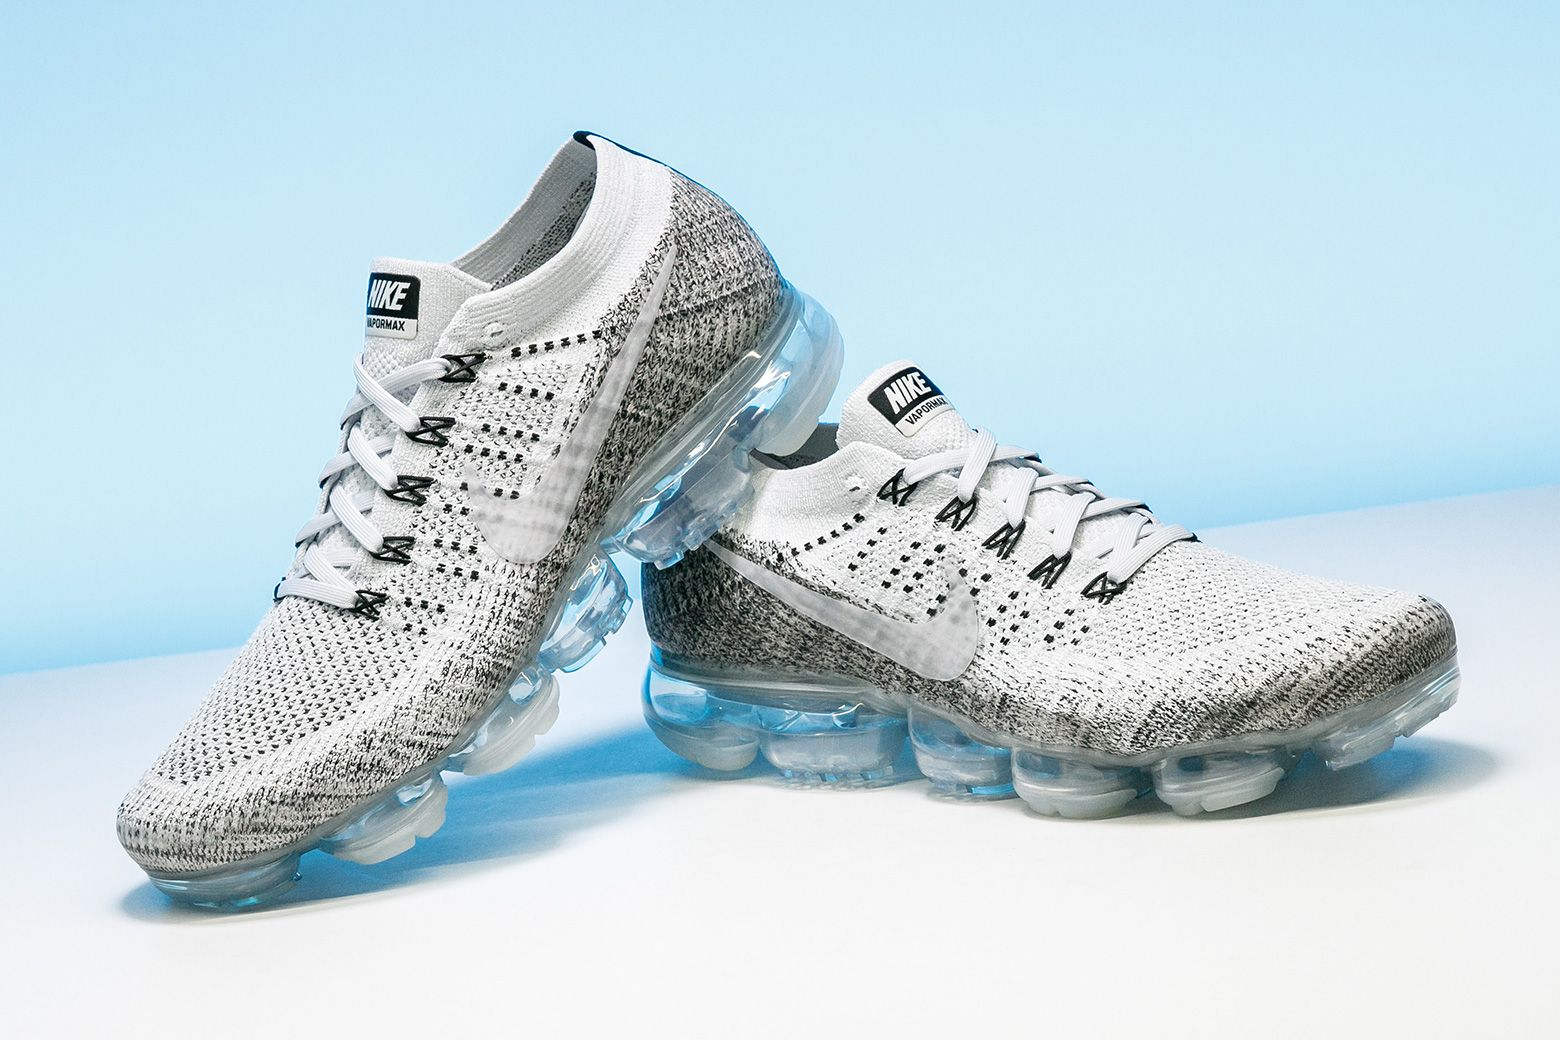 best authentic 1513d 2cef6 What is your favorite Nike VaporMax colorway  https   www.stadiumgoods.